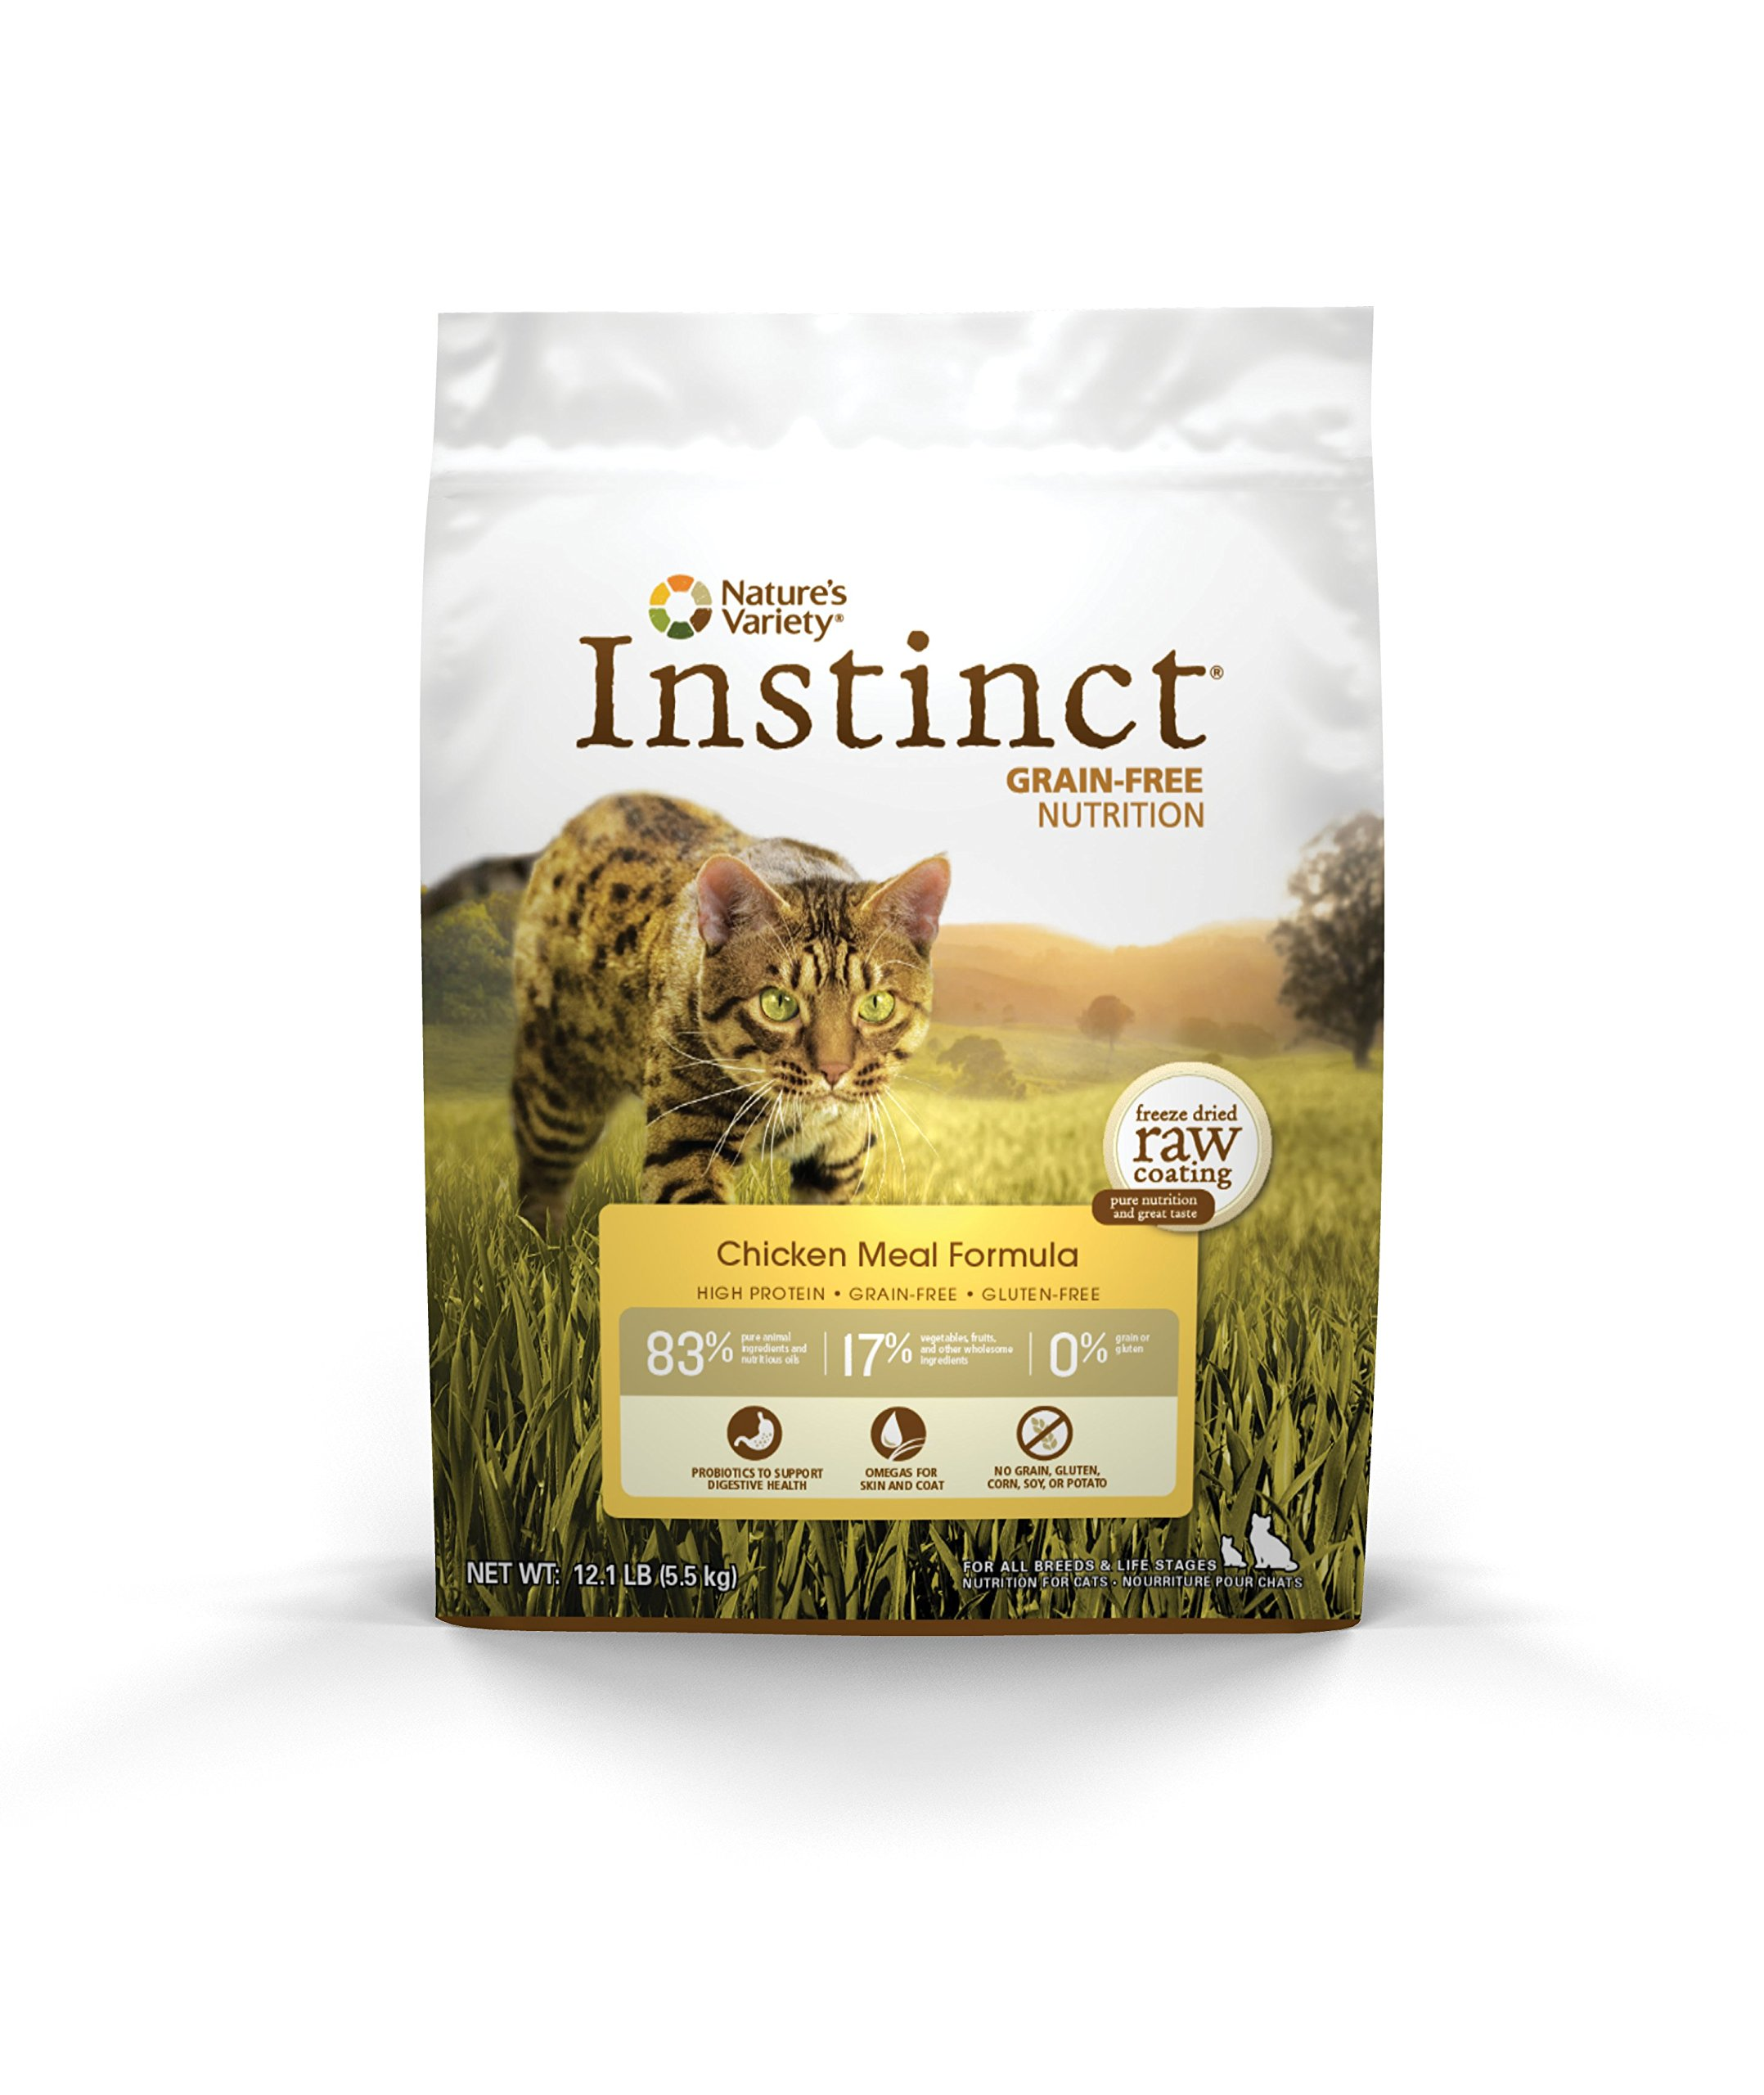 Nature'S Variety Instinct Original Grain Free Chicken Meal Formula Natural Dry Cat Food By, 12.1 Lb. Bag by Nature's Variety